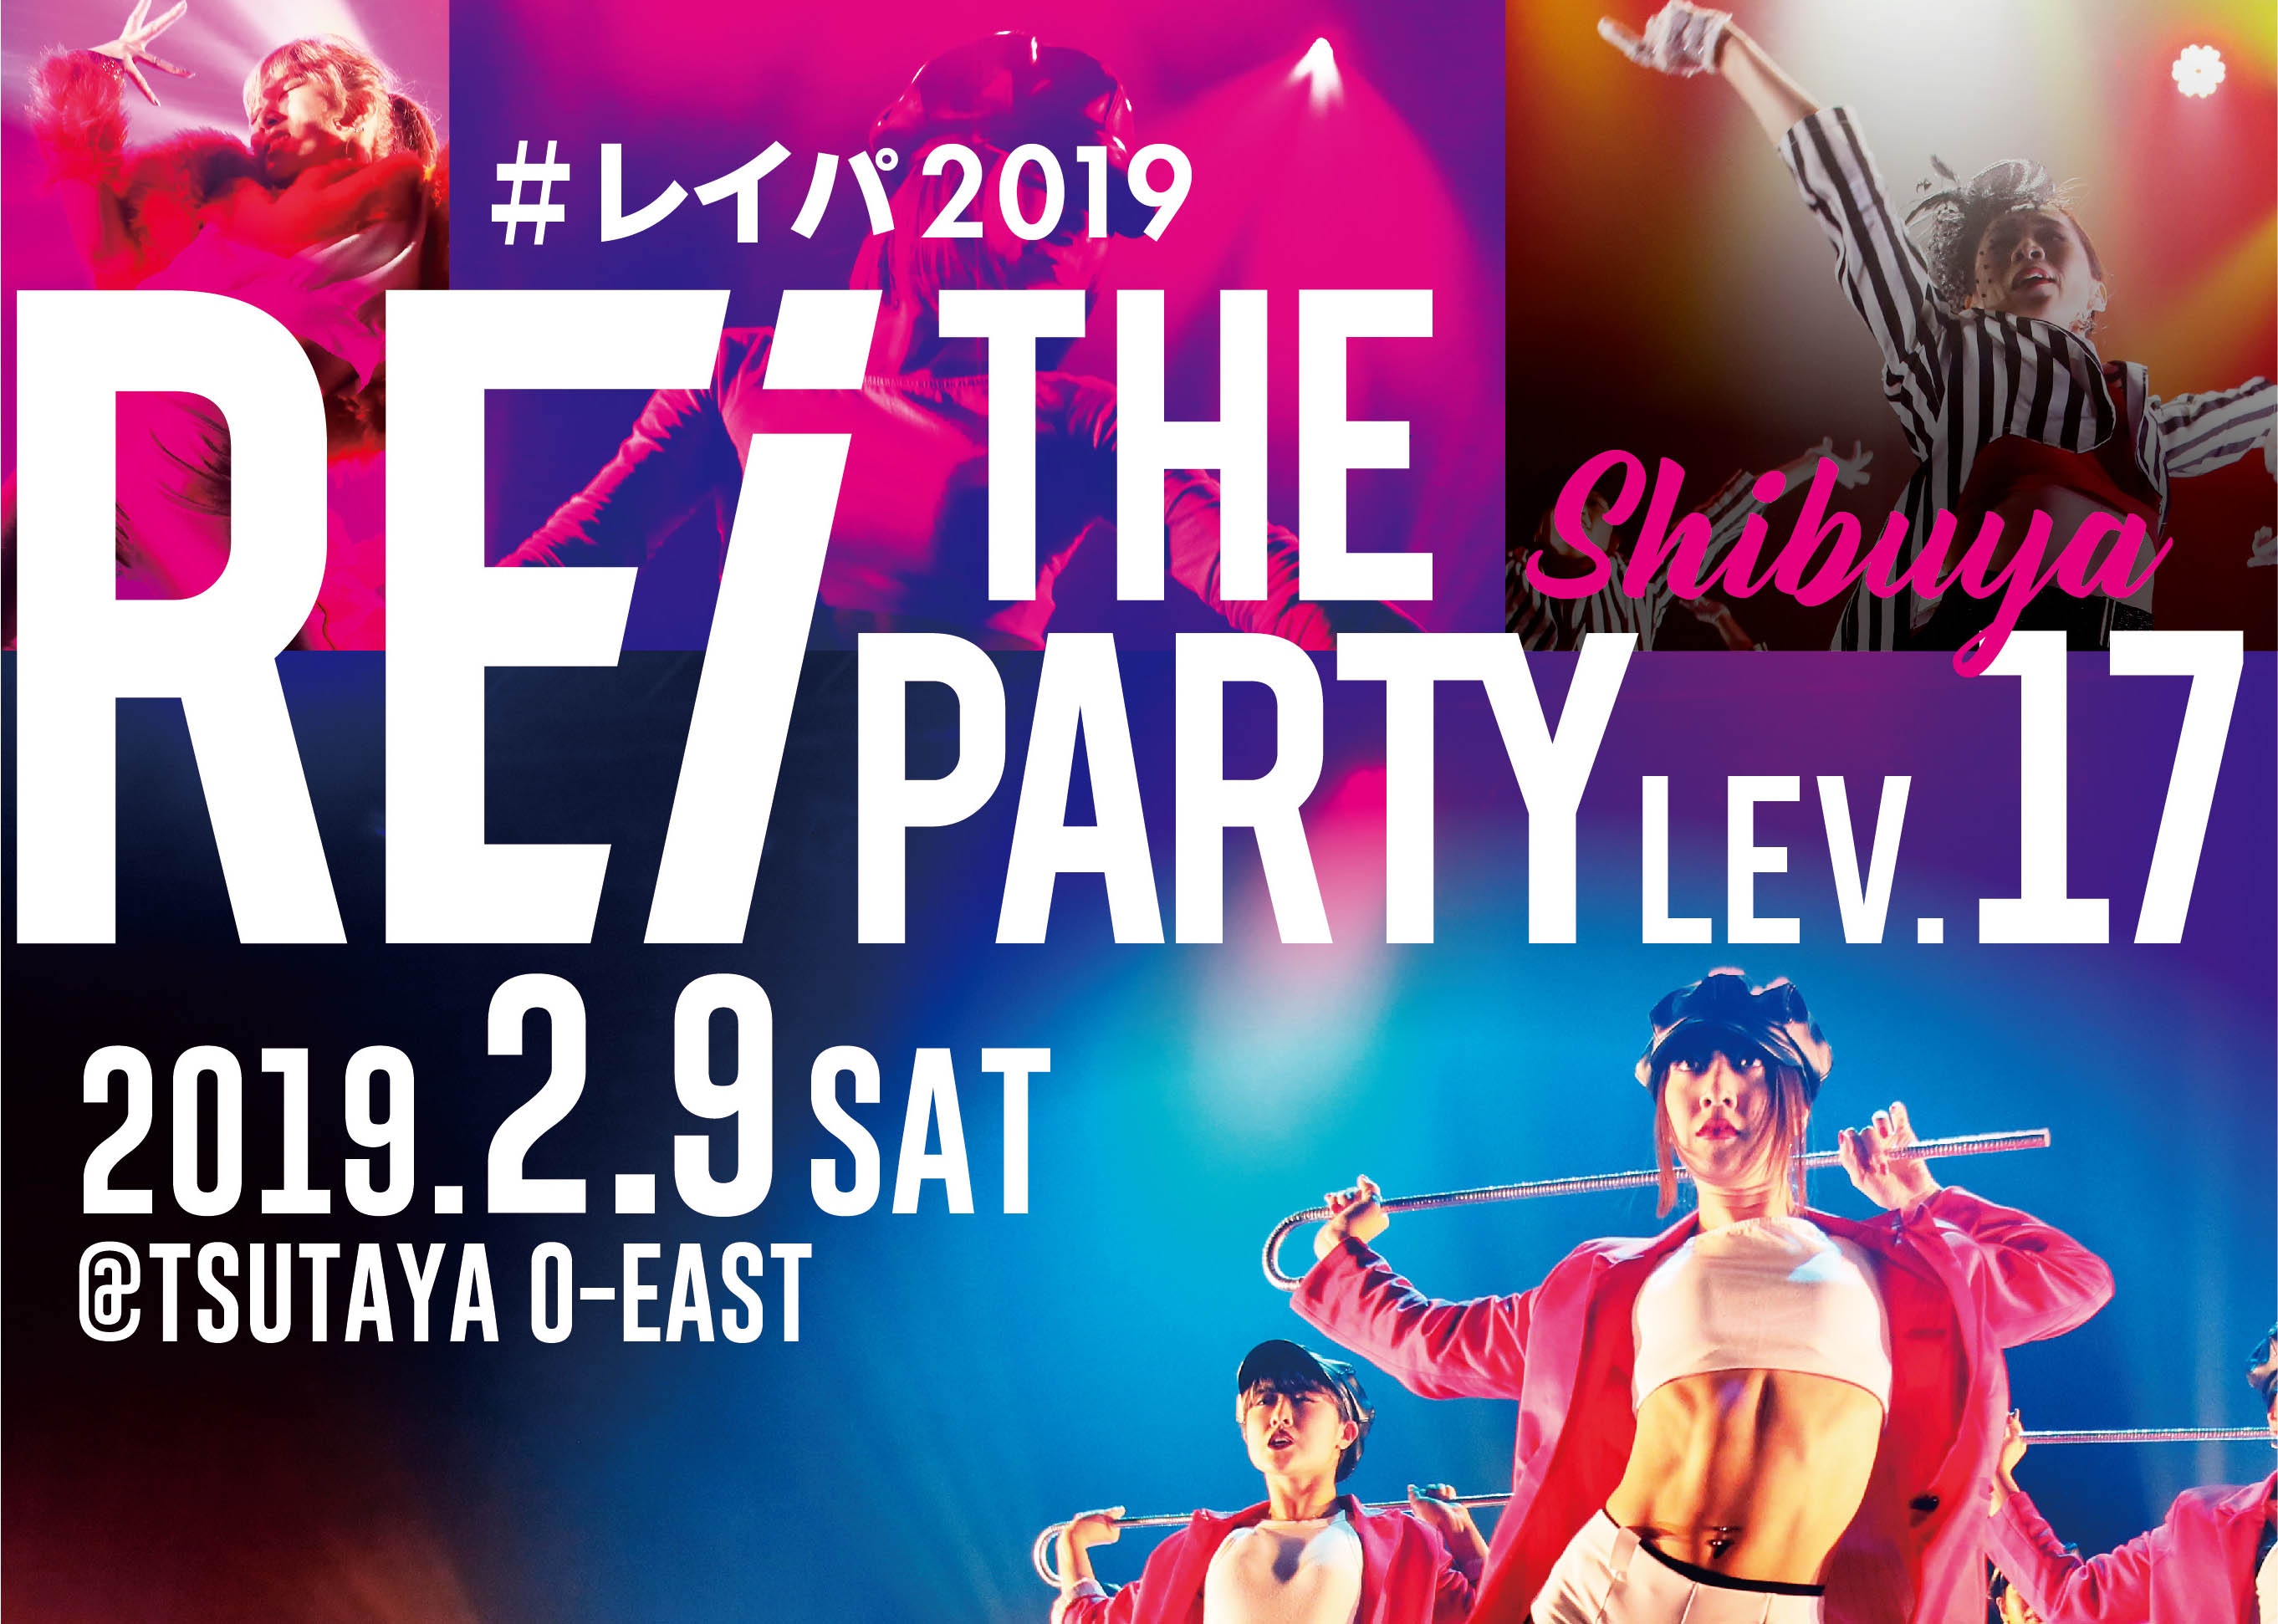 【Rei The Party SHIBUYA LEV17 】豪華GUEST発表!開催迫る!